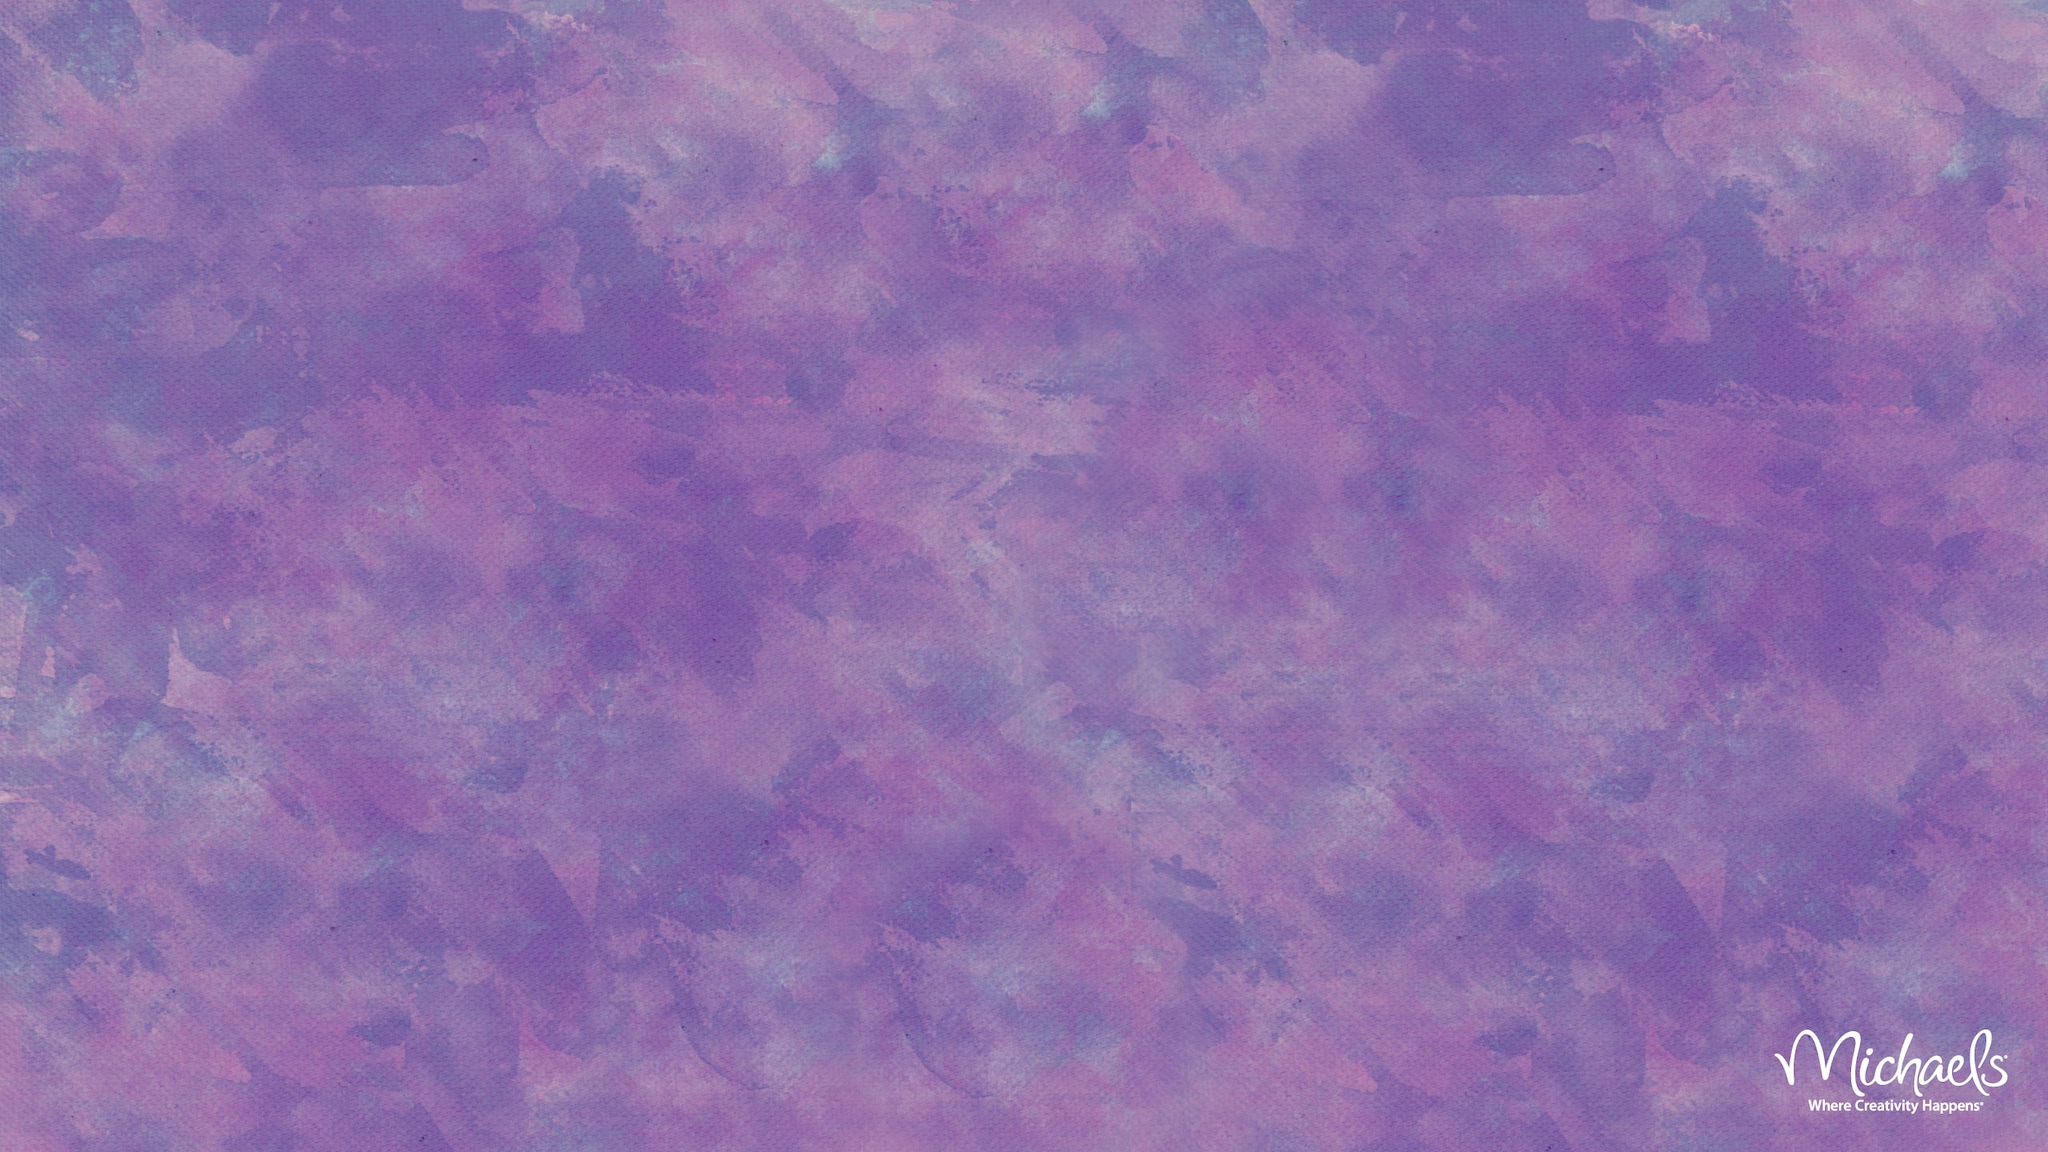 Best Wallpaper Marble Violet - PurplePaintParty_2560x1440  Collection_622577.jpg